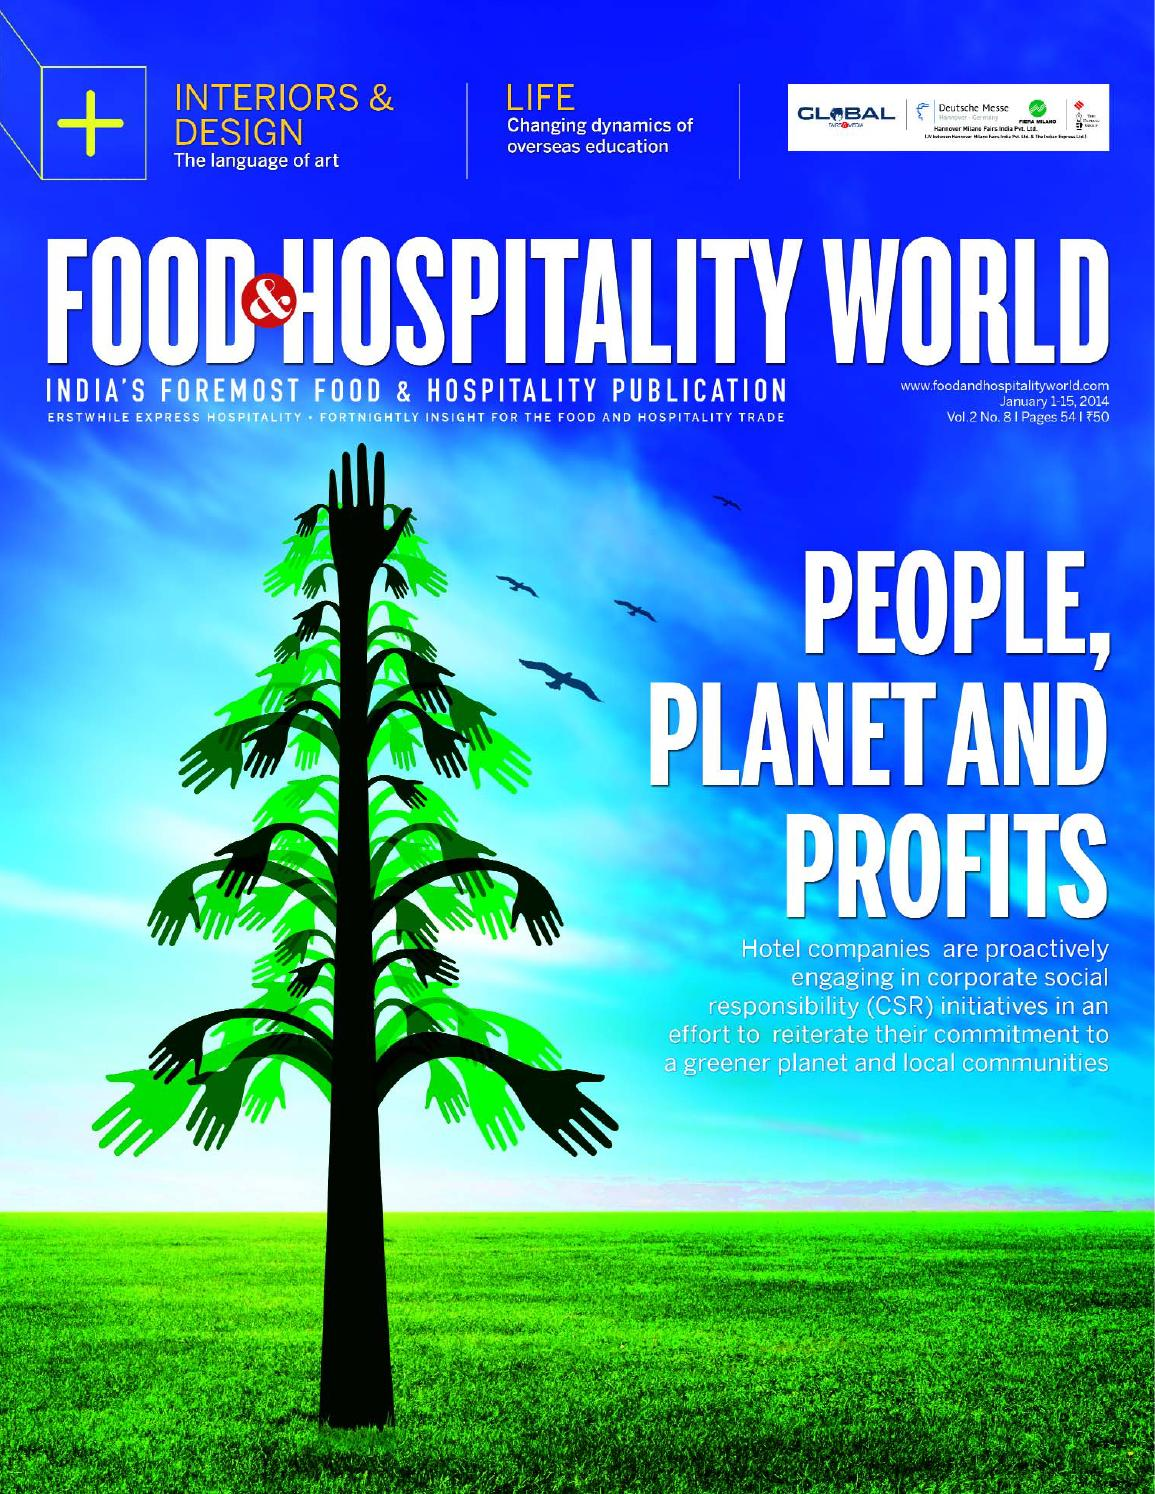 Food and Hospitality World January 1-15, 2014 by Indian Express - issuu